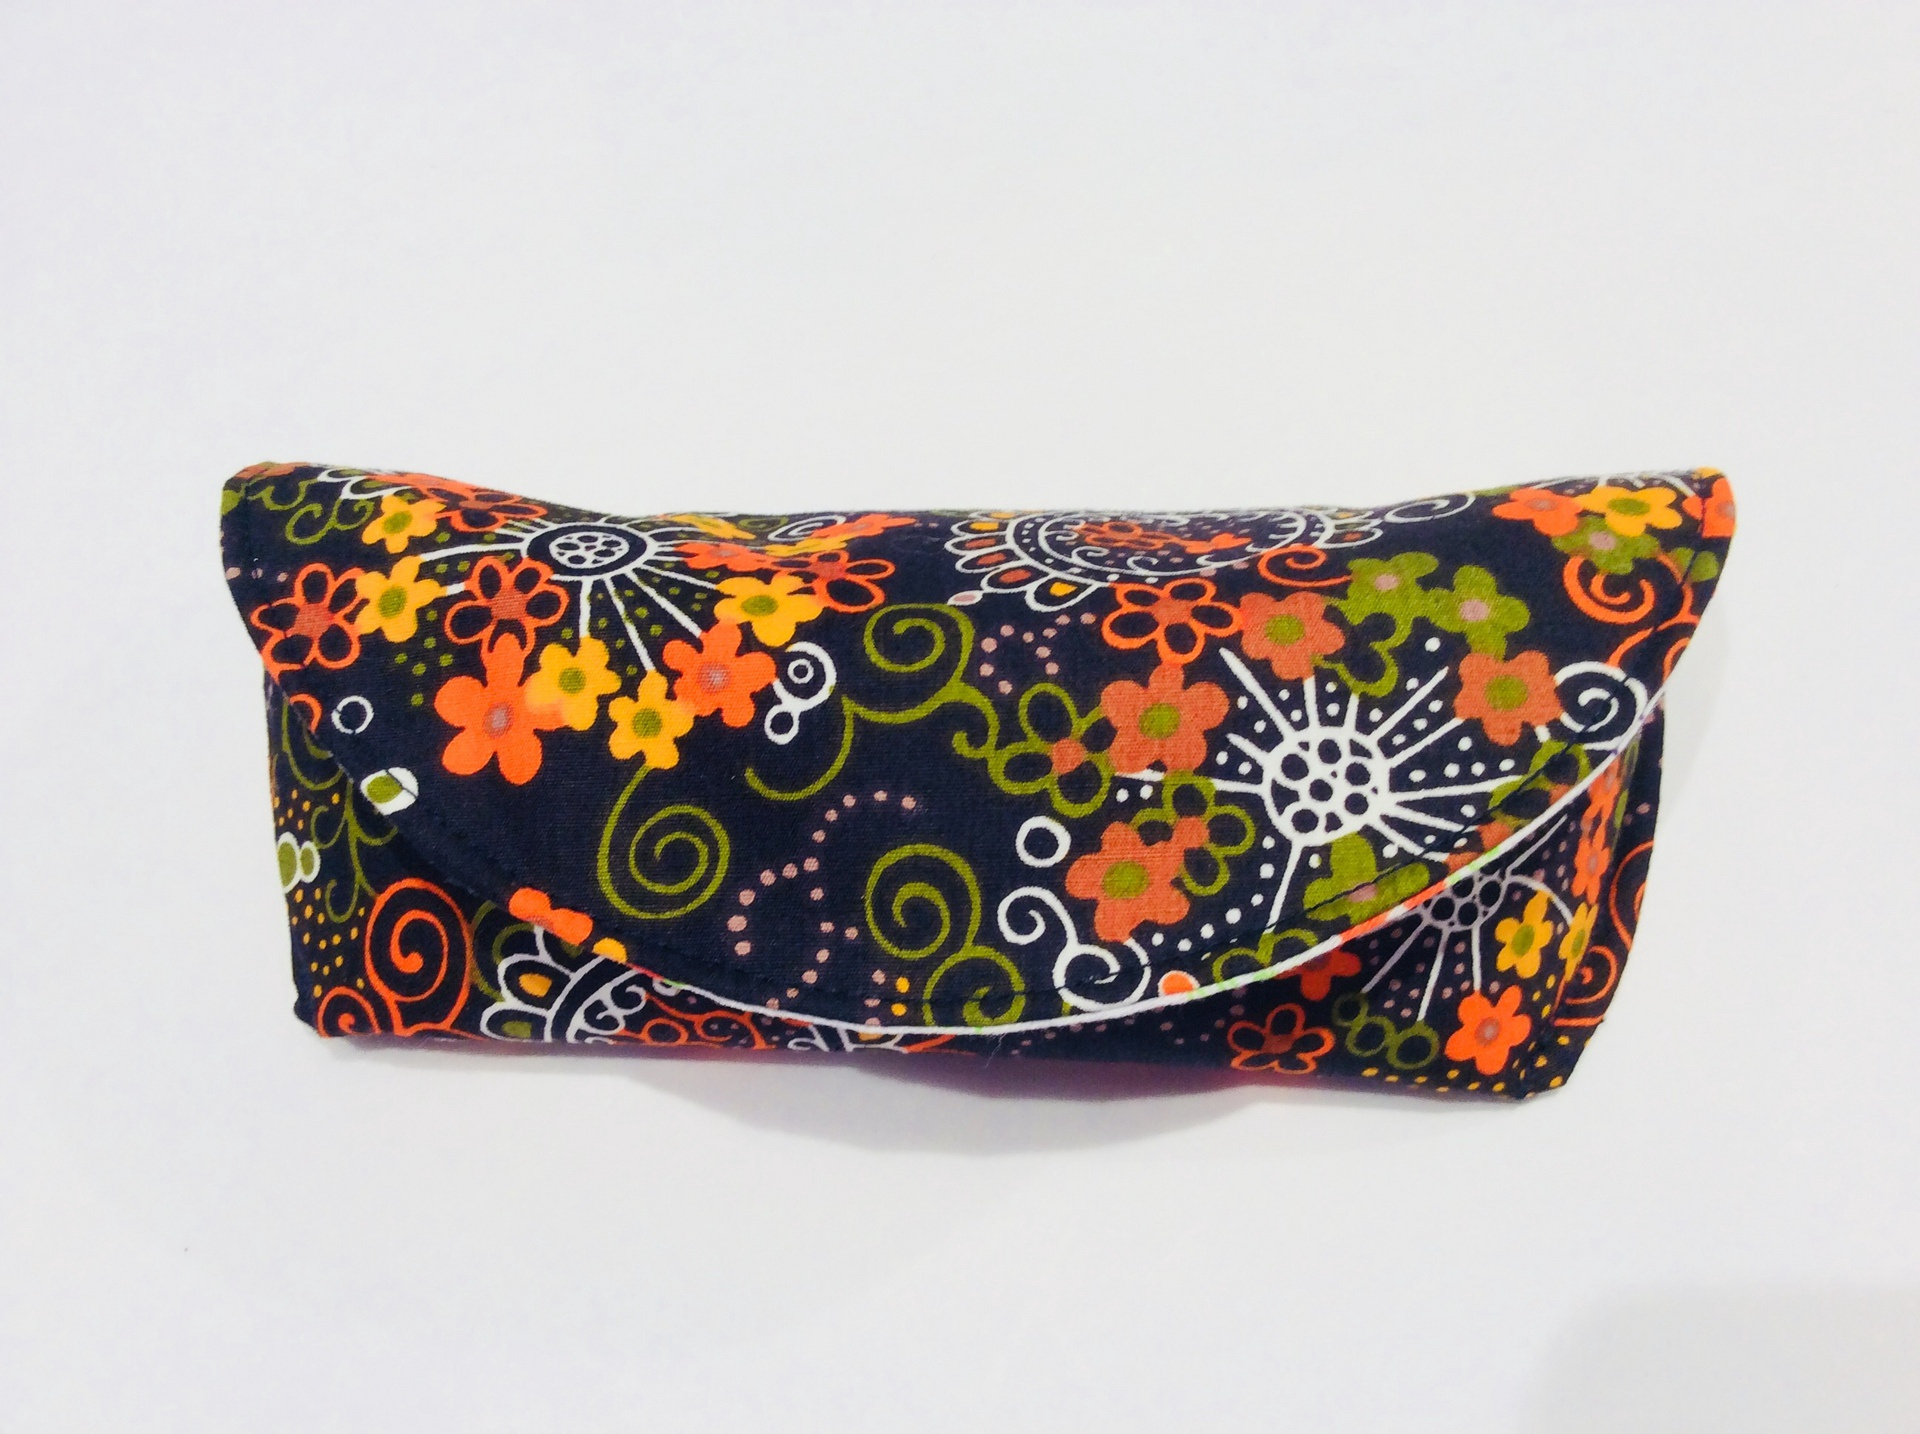 Funky Vintage Fabric Glasses Case - Orange Flowers